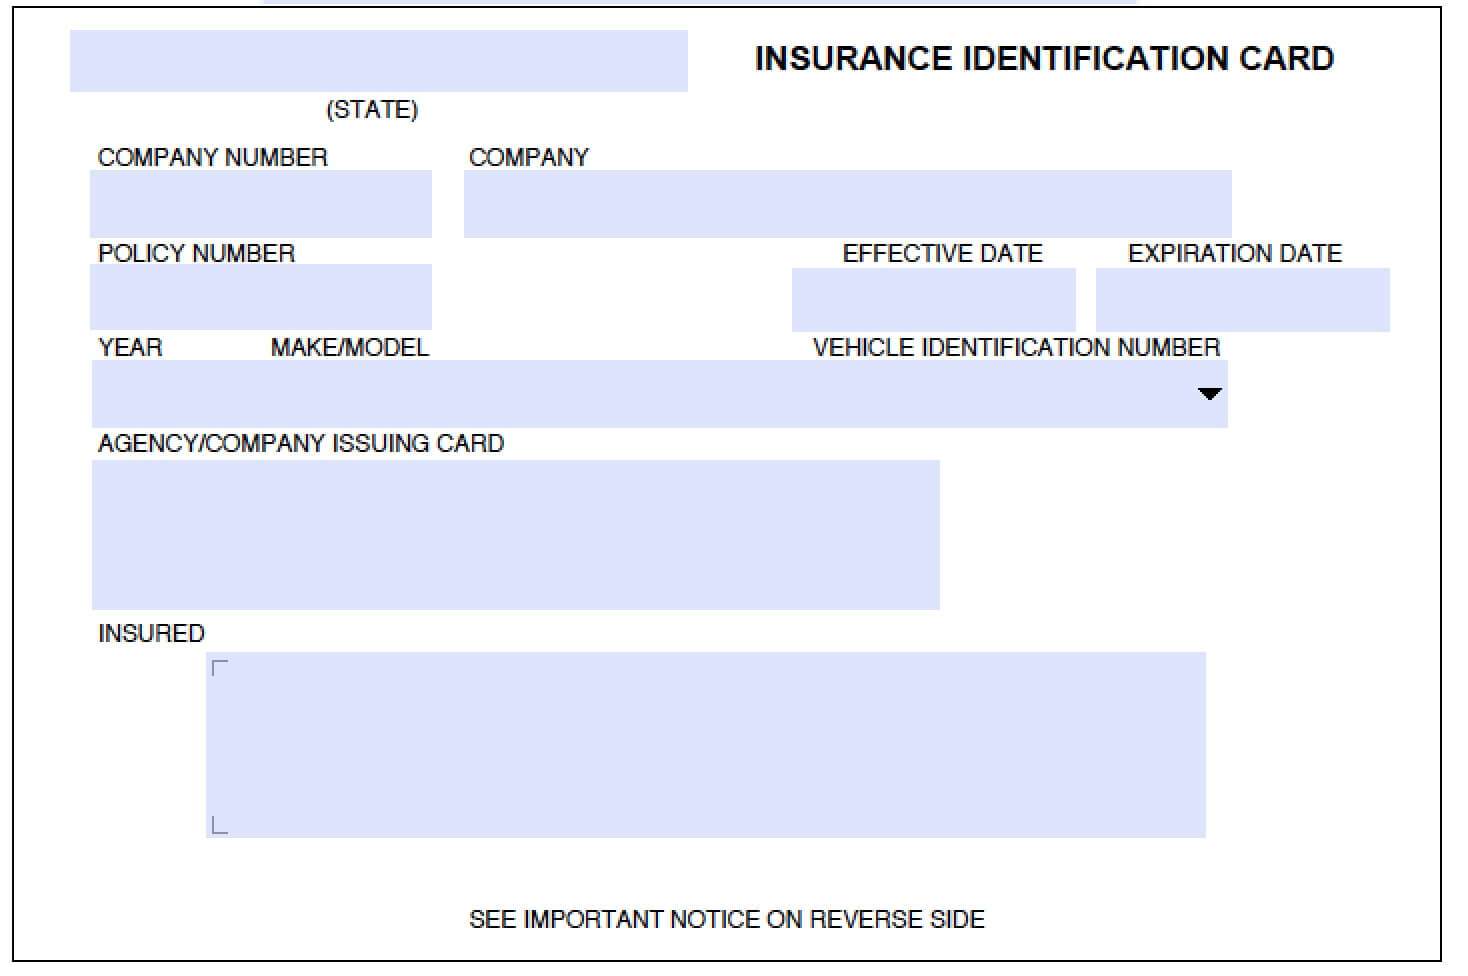 012 Company Car Policy Template Free Auto Insurance Id Card Within Auto Insurance Id Card Template